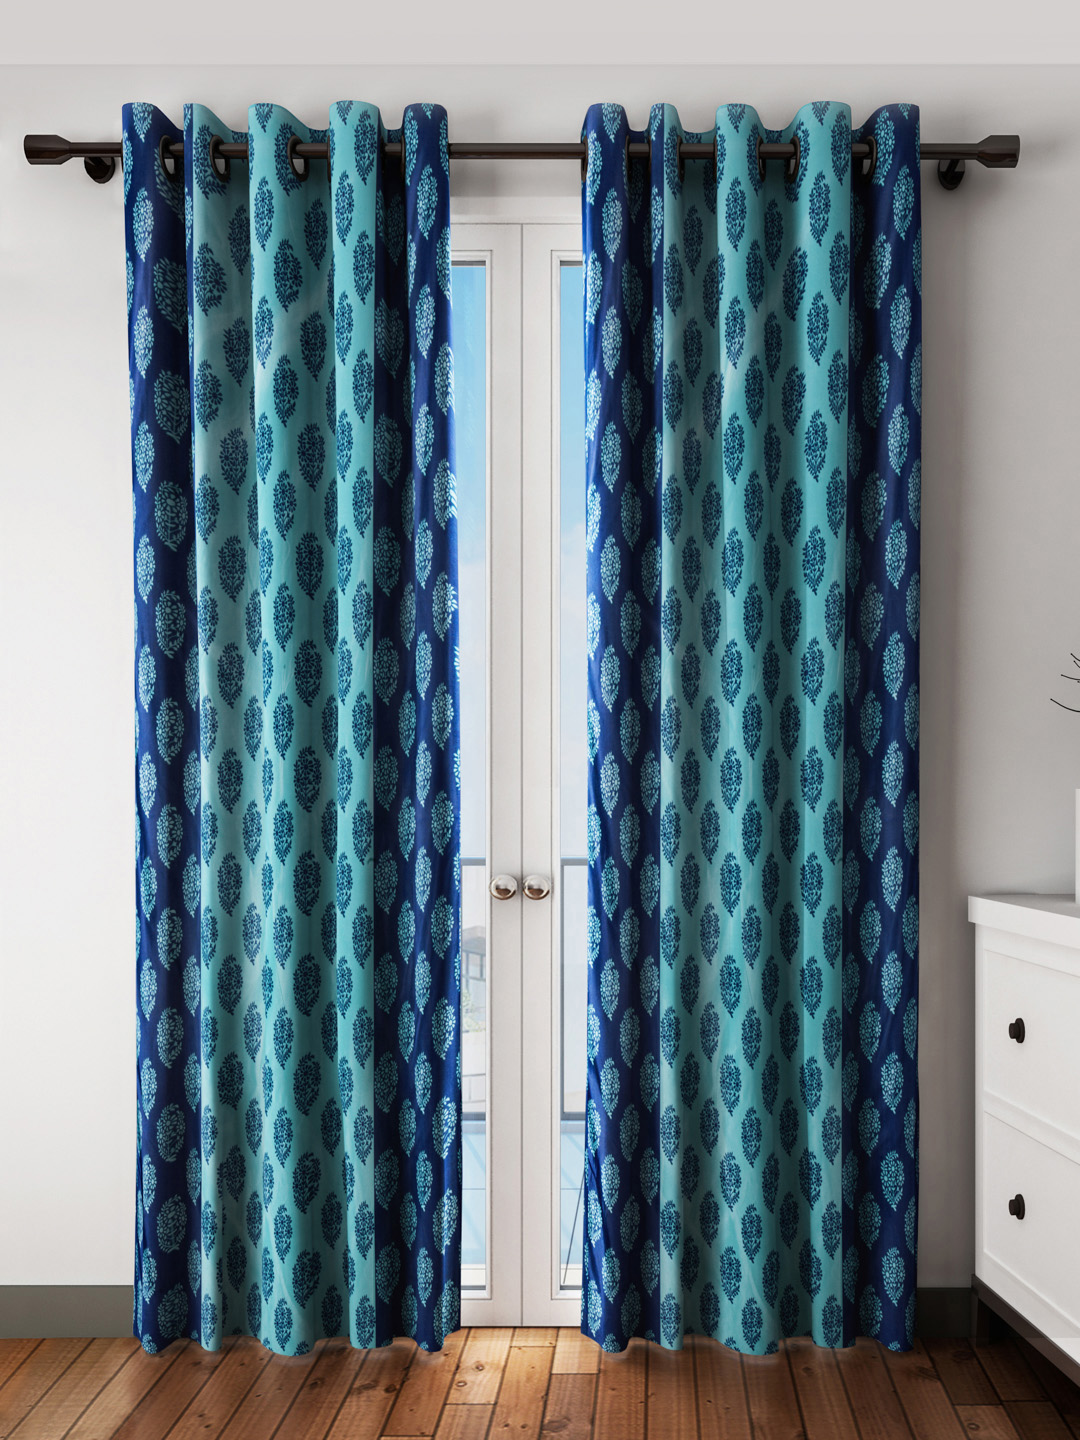 Comforter Sets With Curtains Matching Command Curtain Hooks Rod Hook